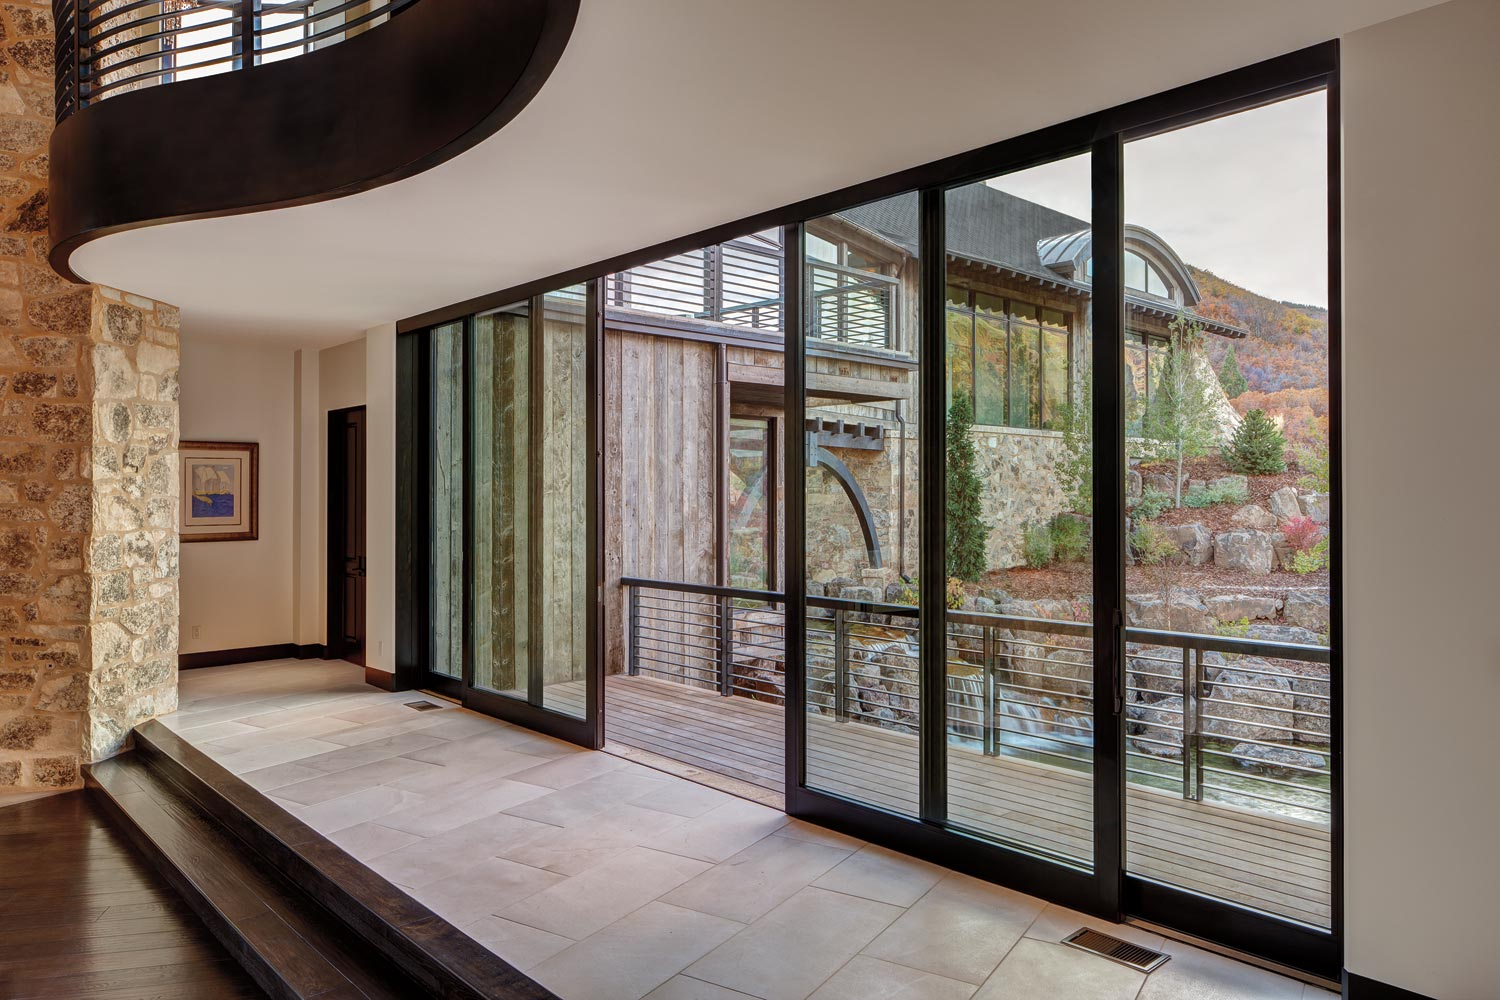 Marvin Ultimate Lift and Slide Doors 1 - What Are Lift and Slide Doors? And What Benefits Do You Gain with Them?